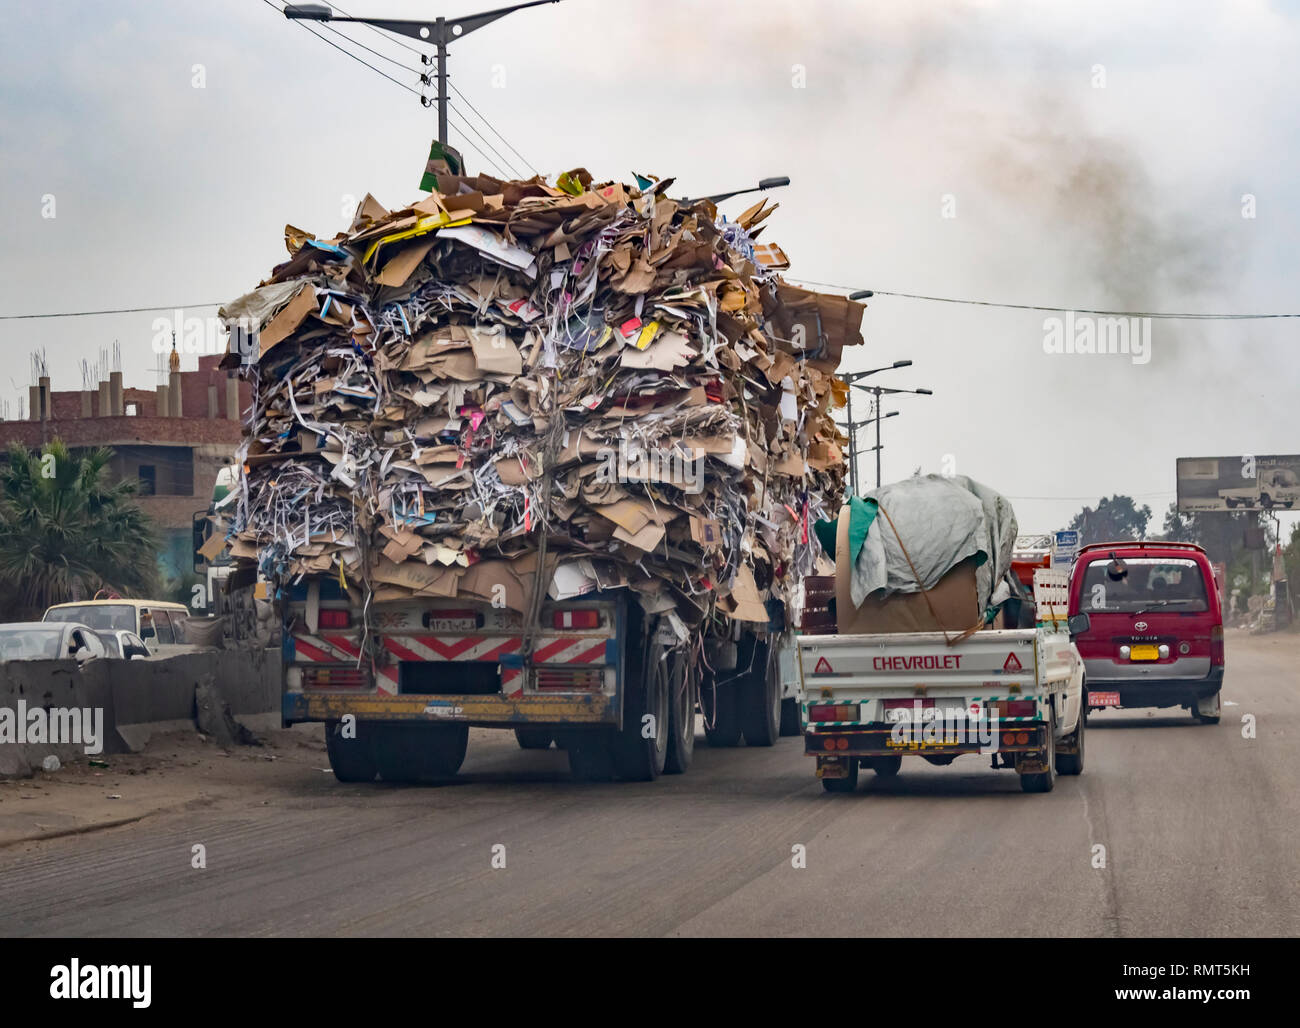 Kafr-El-Sheikh, Egypt - 13 March 2014: A Truck loaded with garbage heading for landfill site in Egypt. - Stock Image